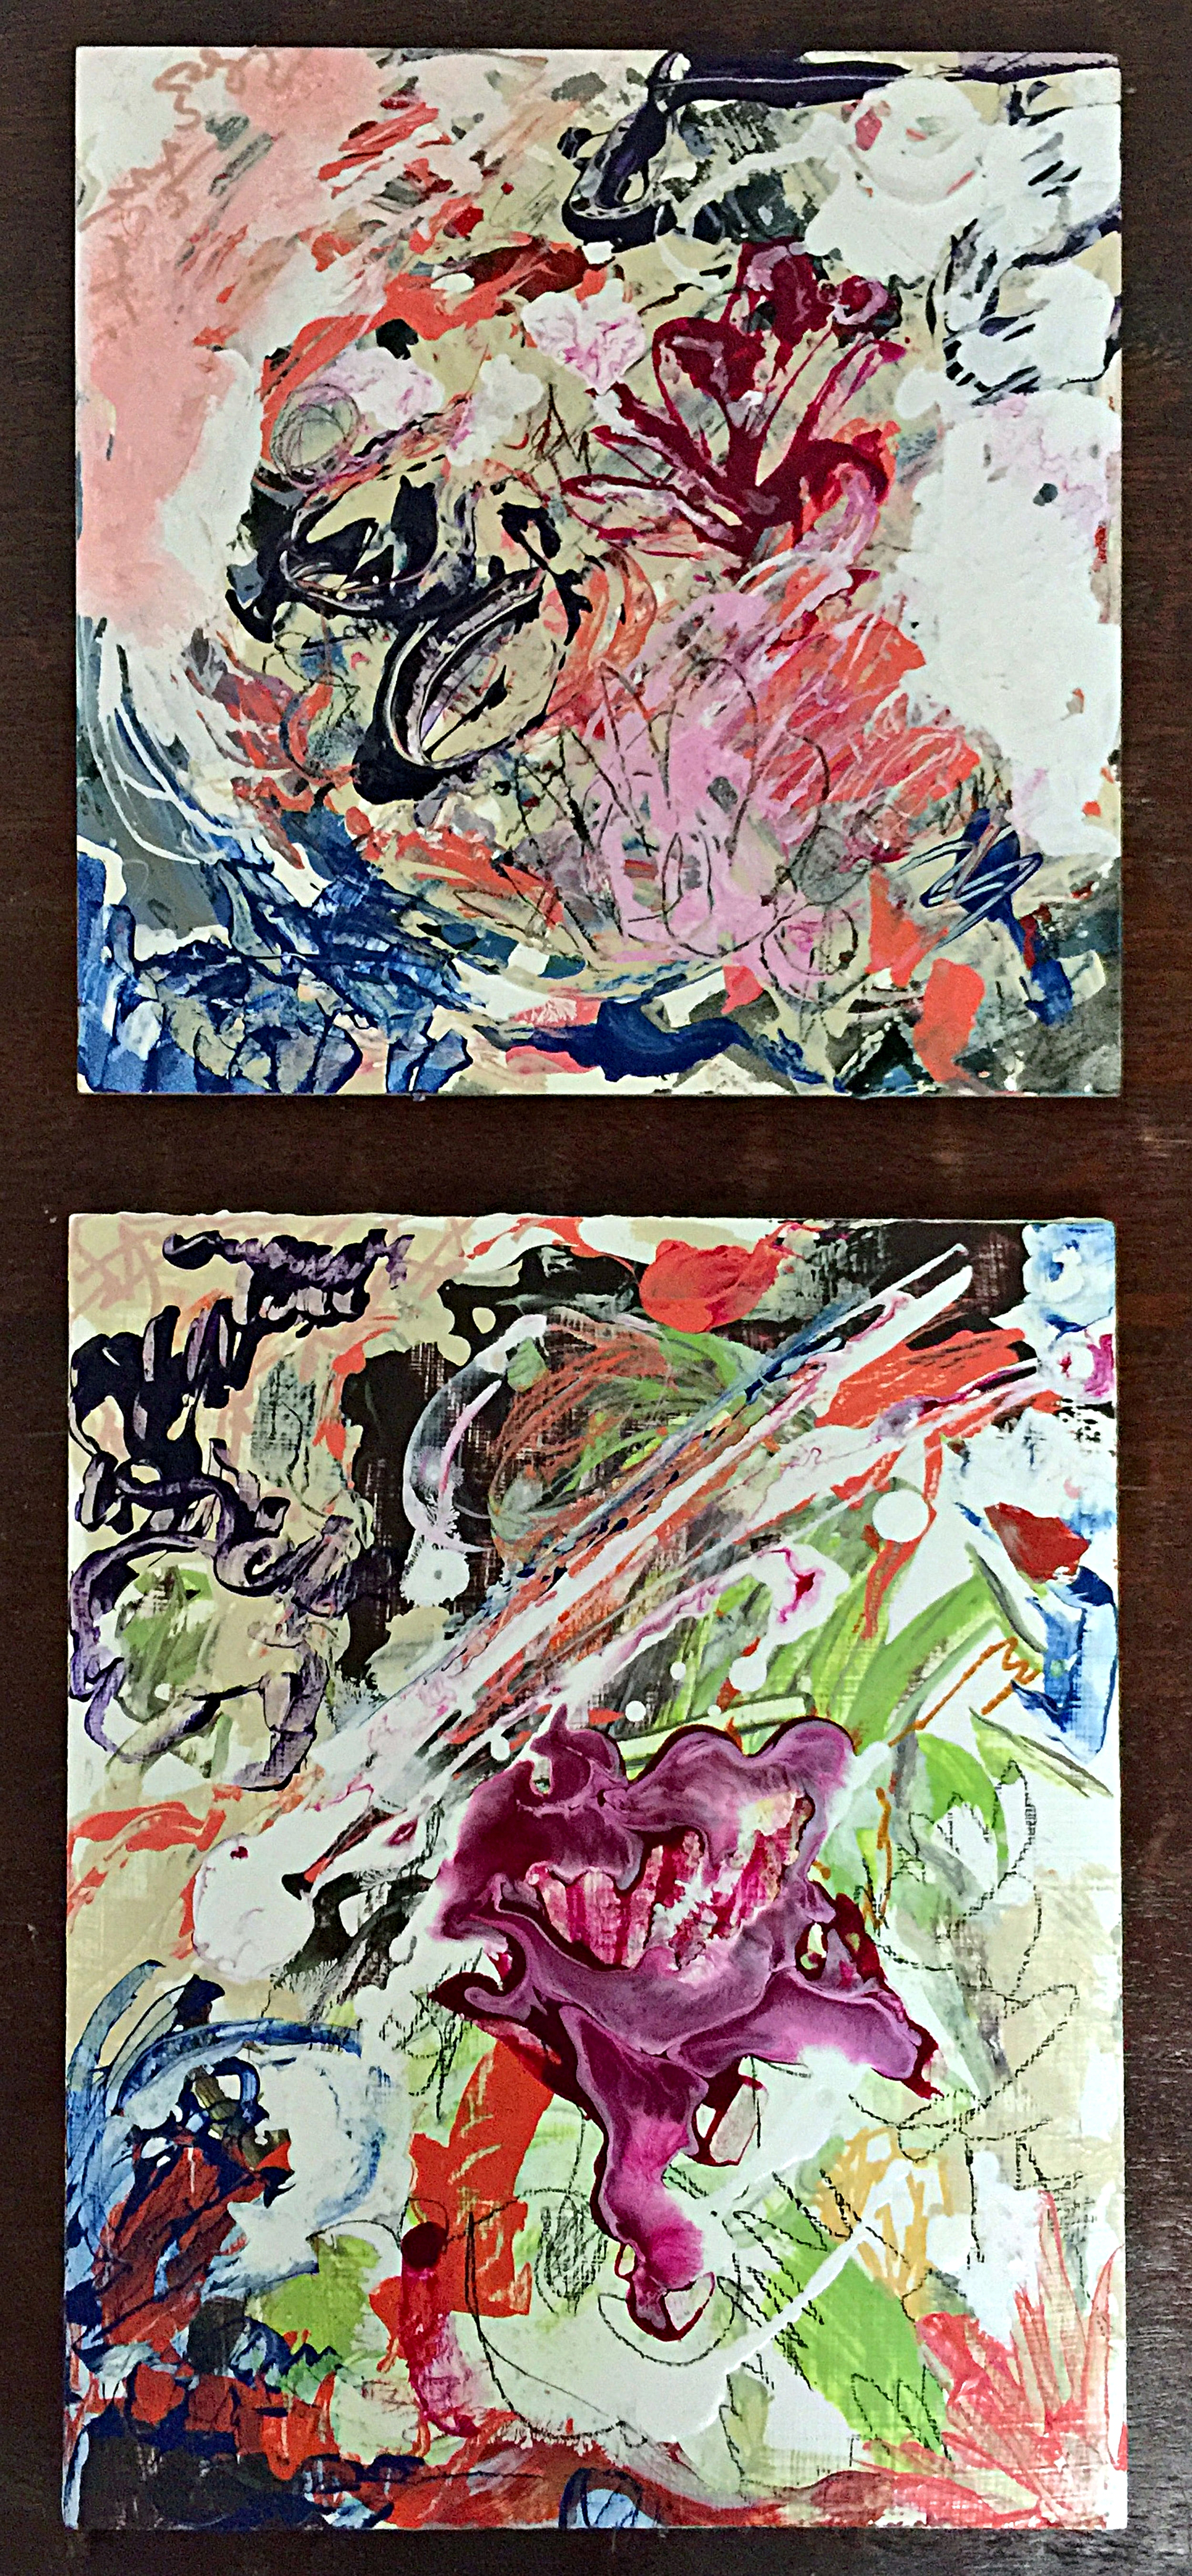 Diptych: In The Sun and Blood Flower